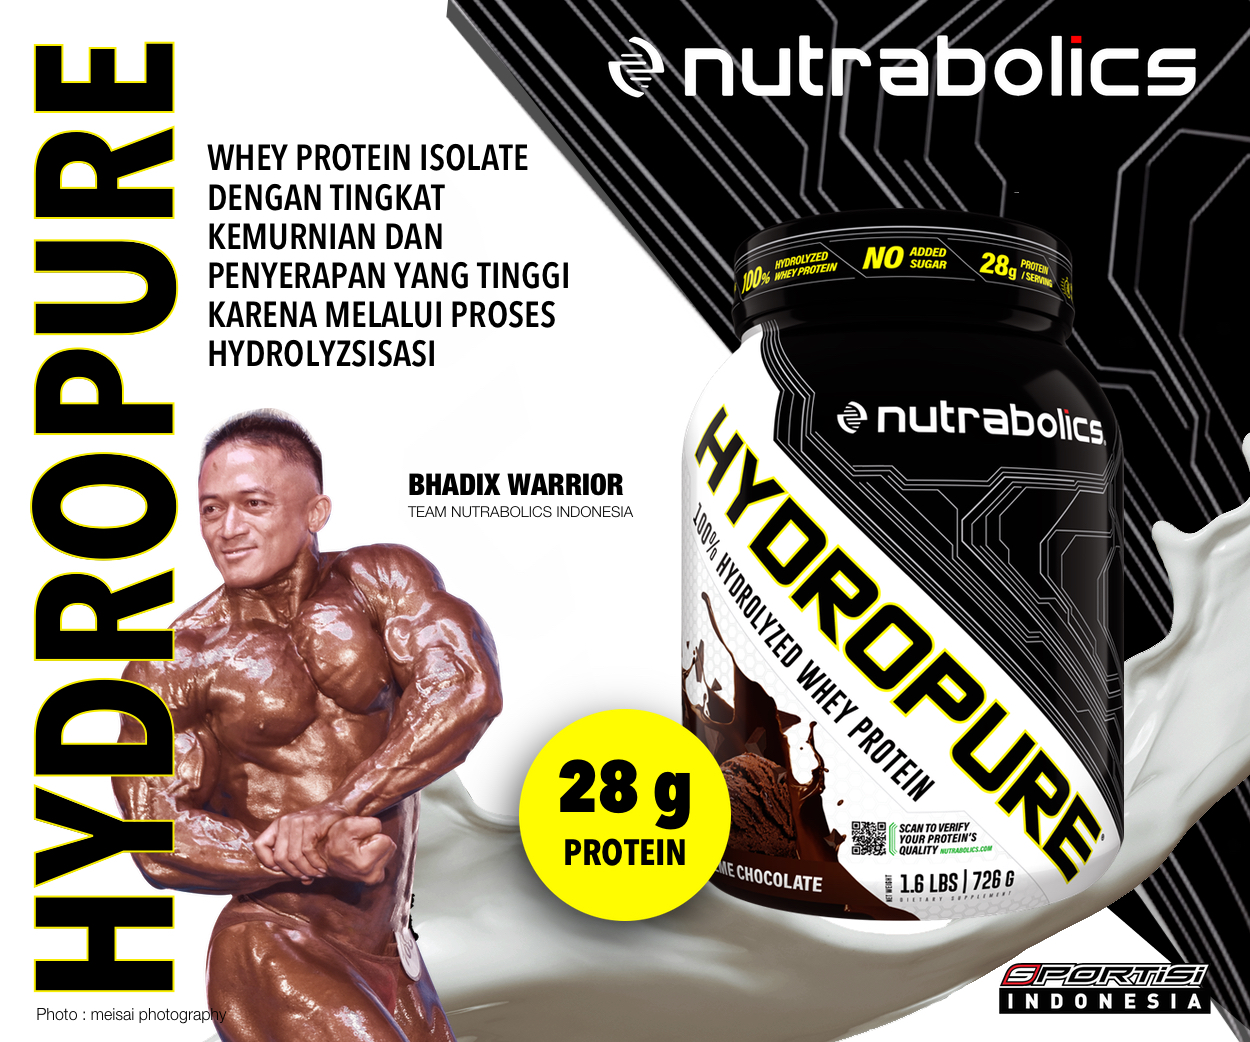 Nutrabolics